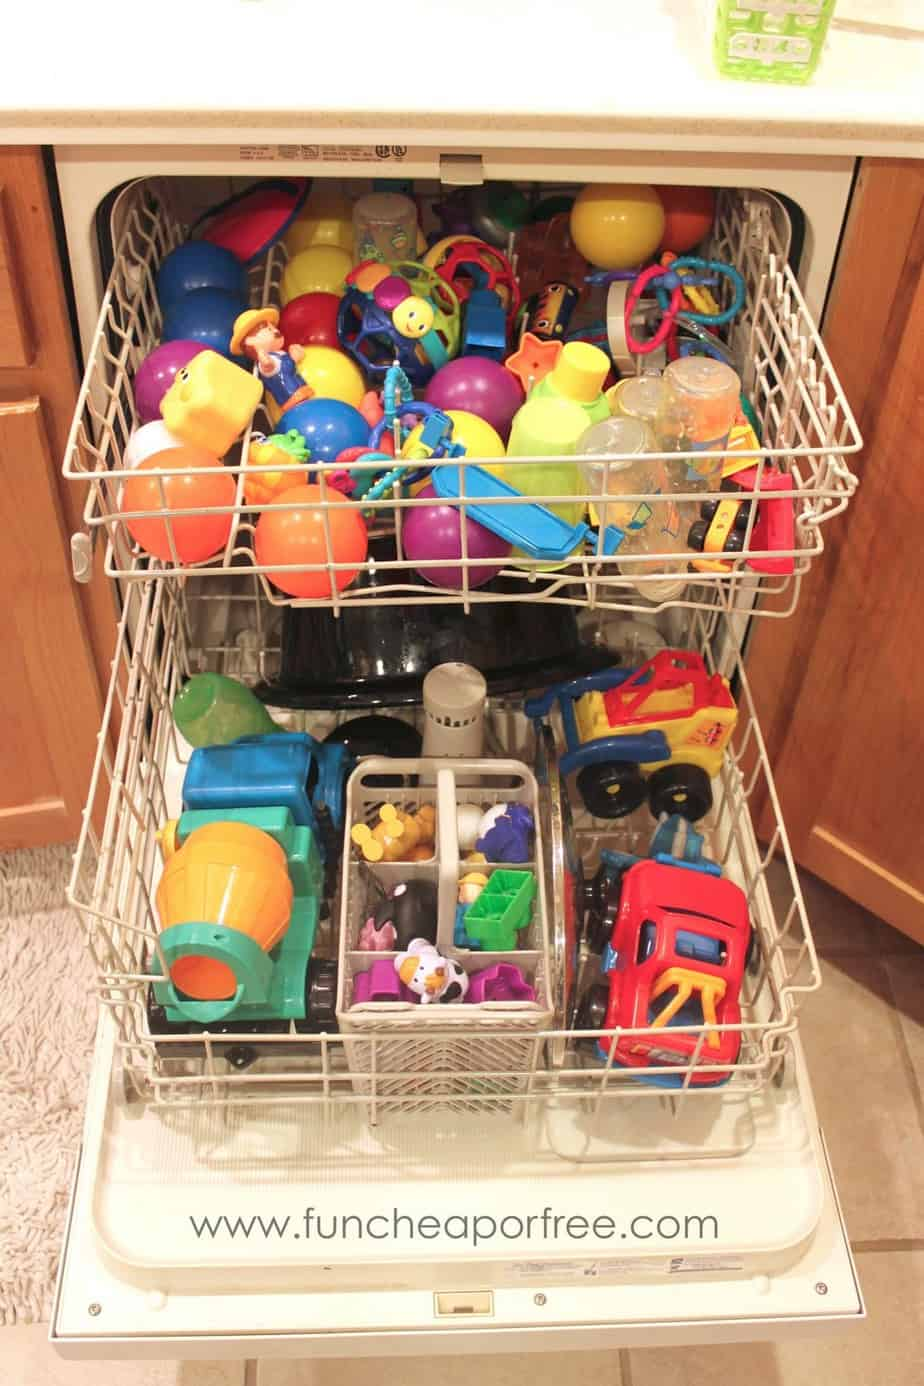 clean toys in dishwasher